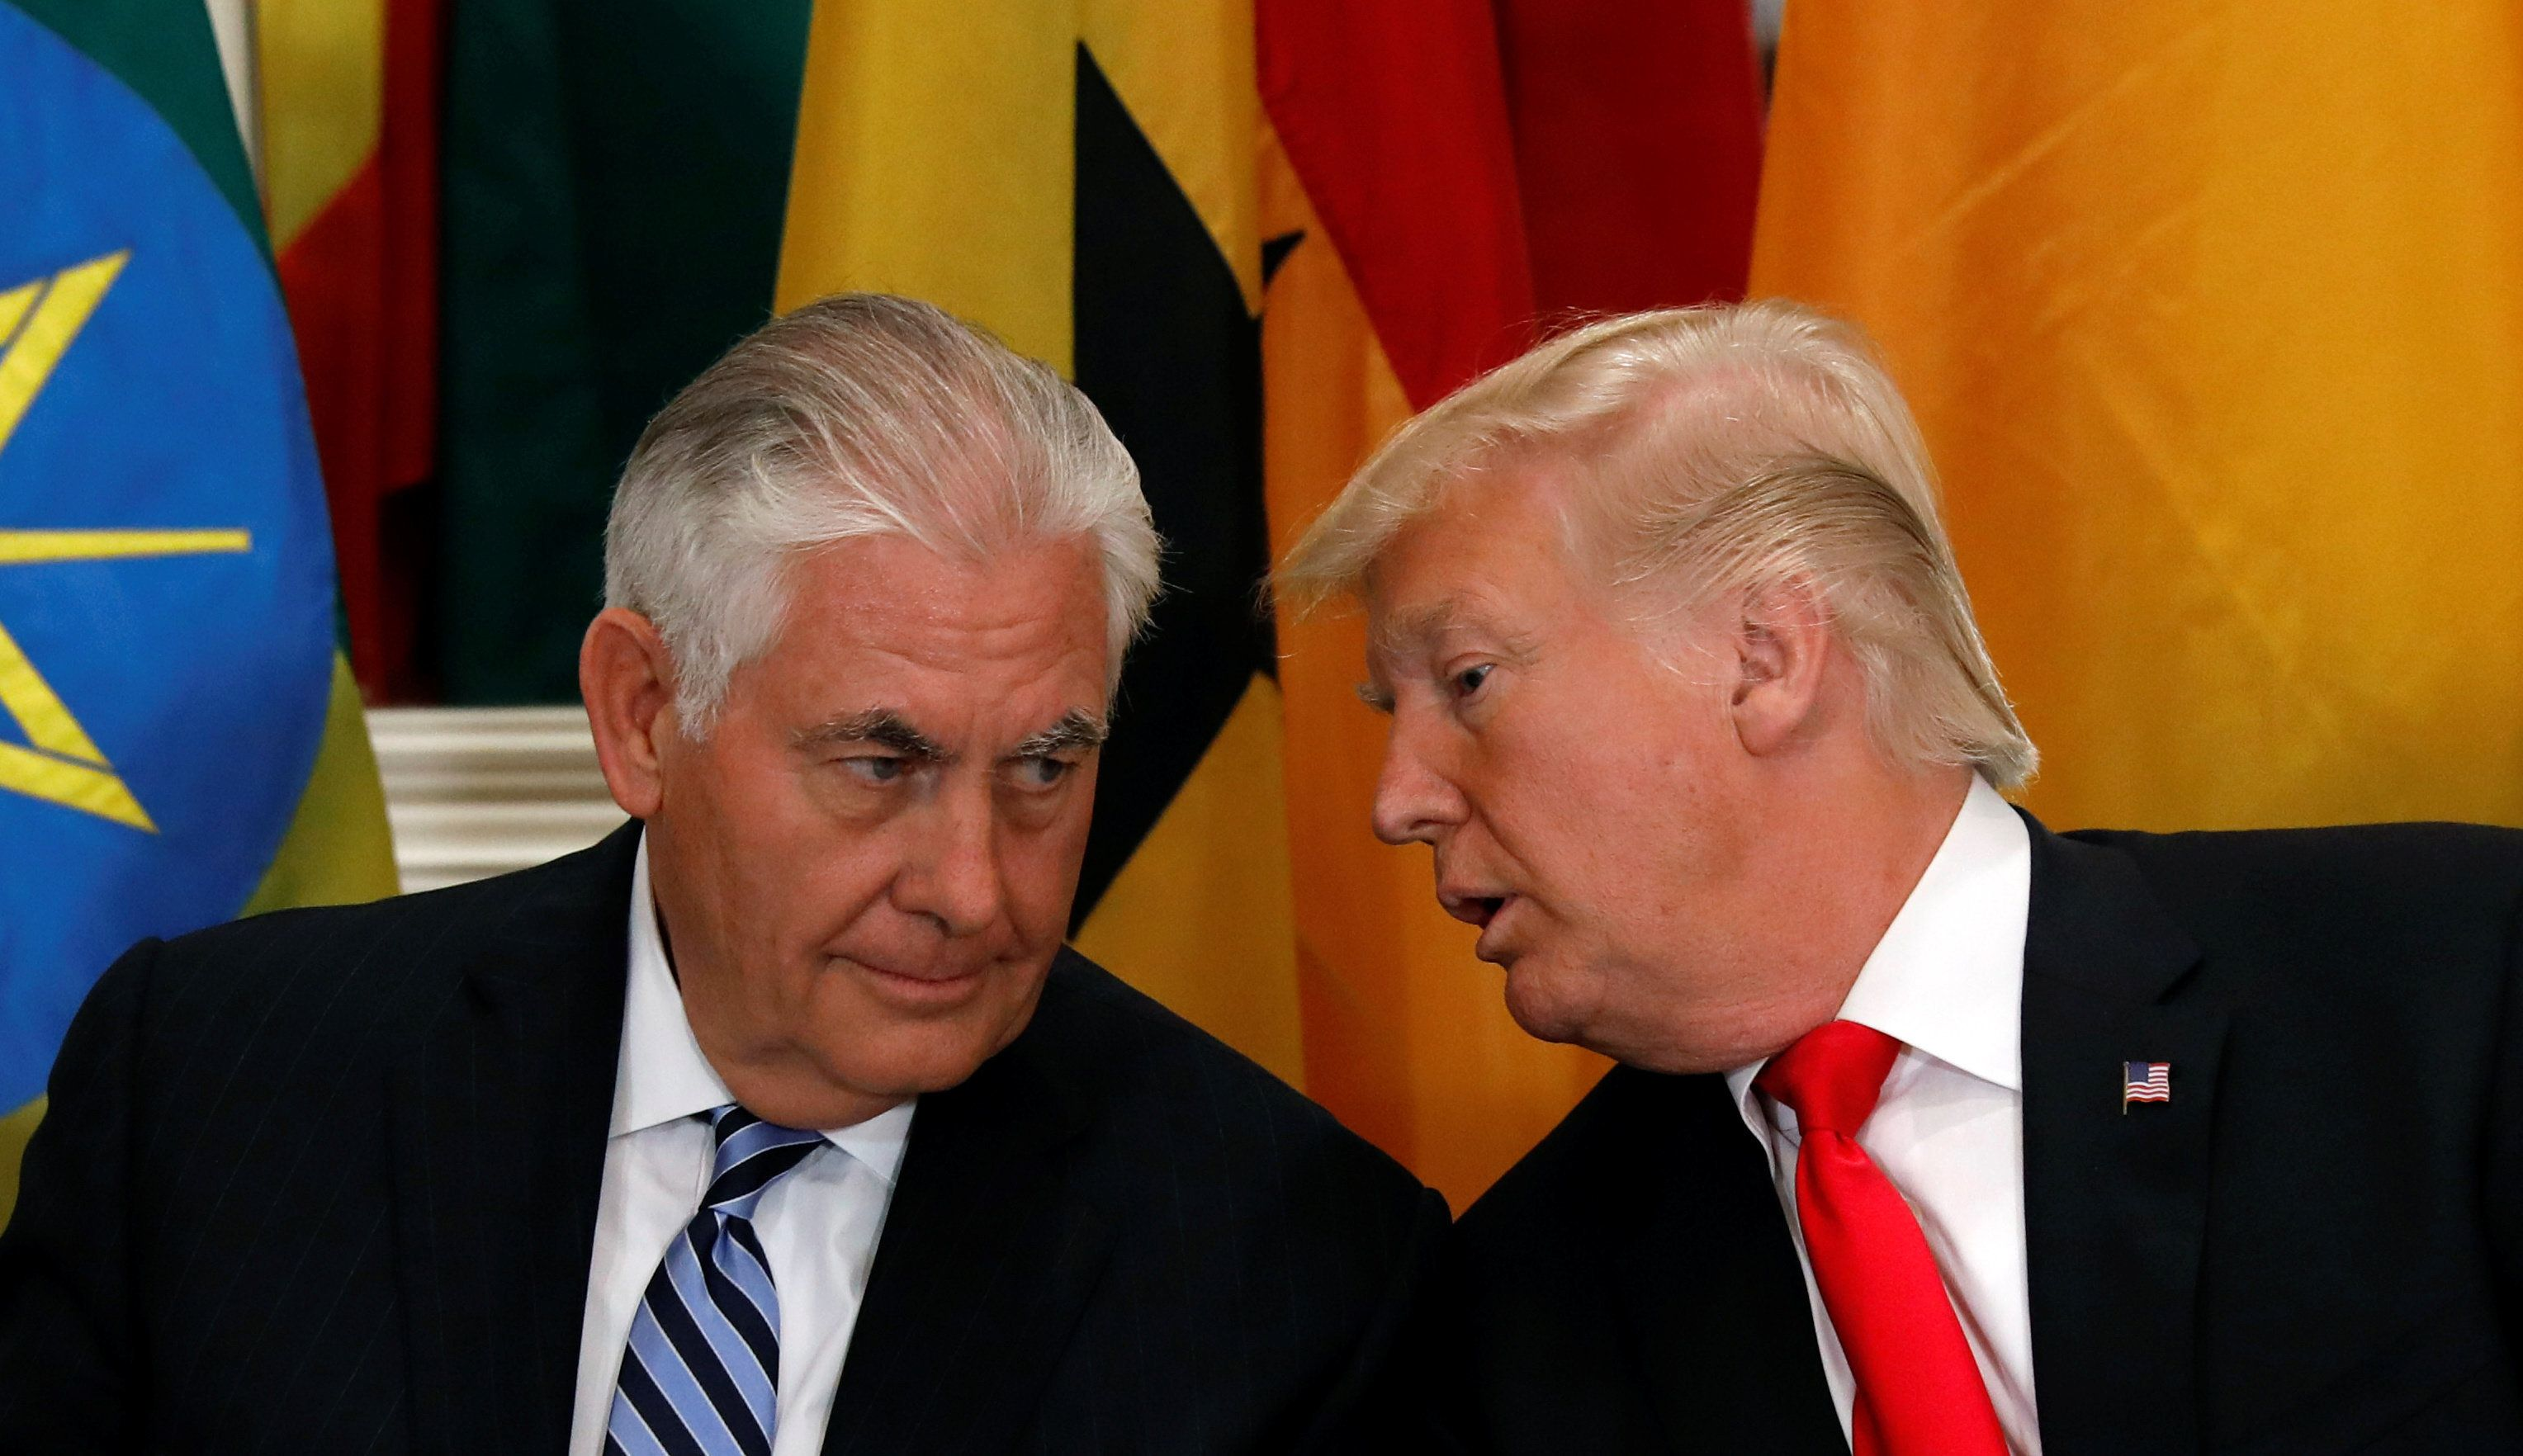 Donald Trump Accused Of 'Castrating' Rex Tillerson With Tweets